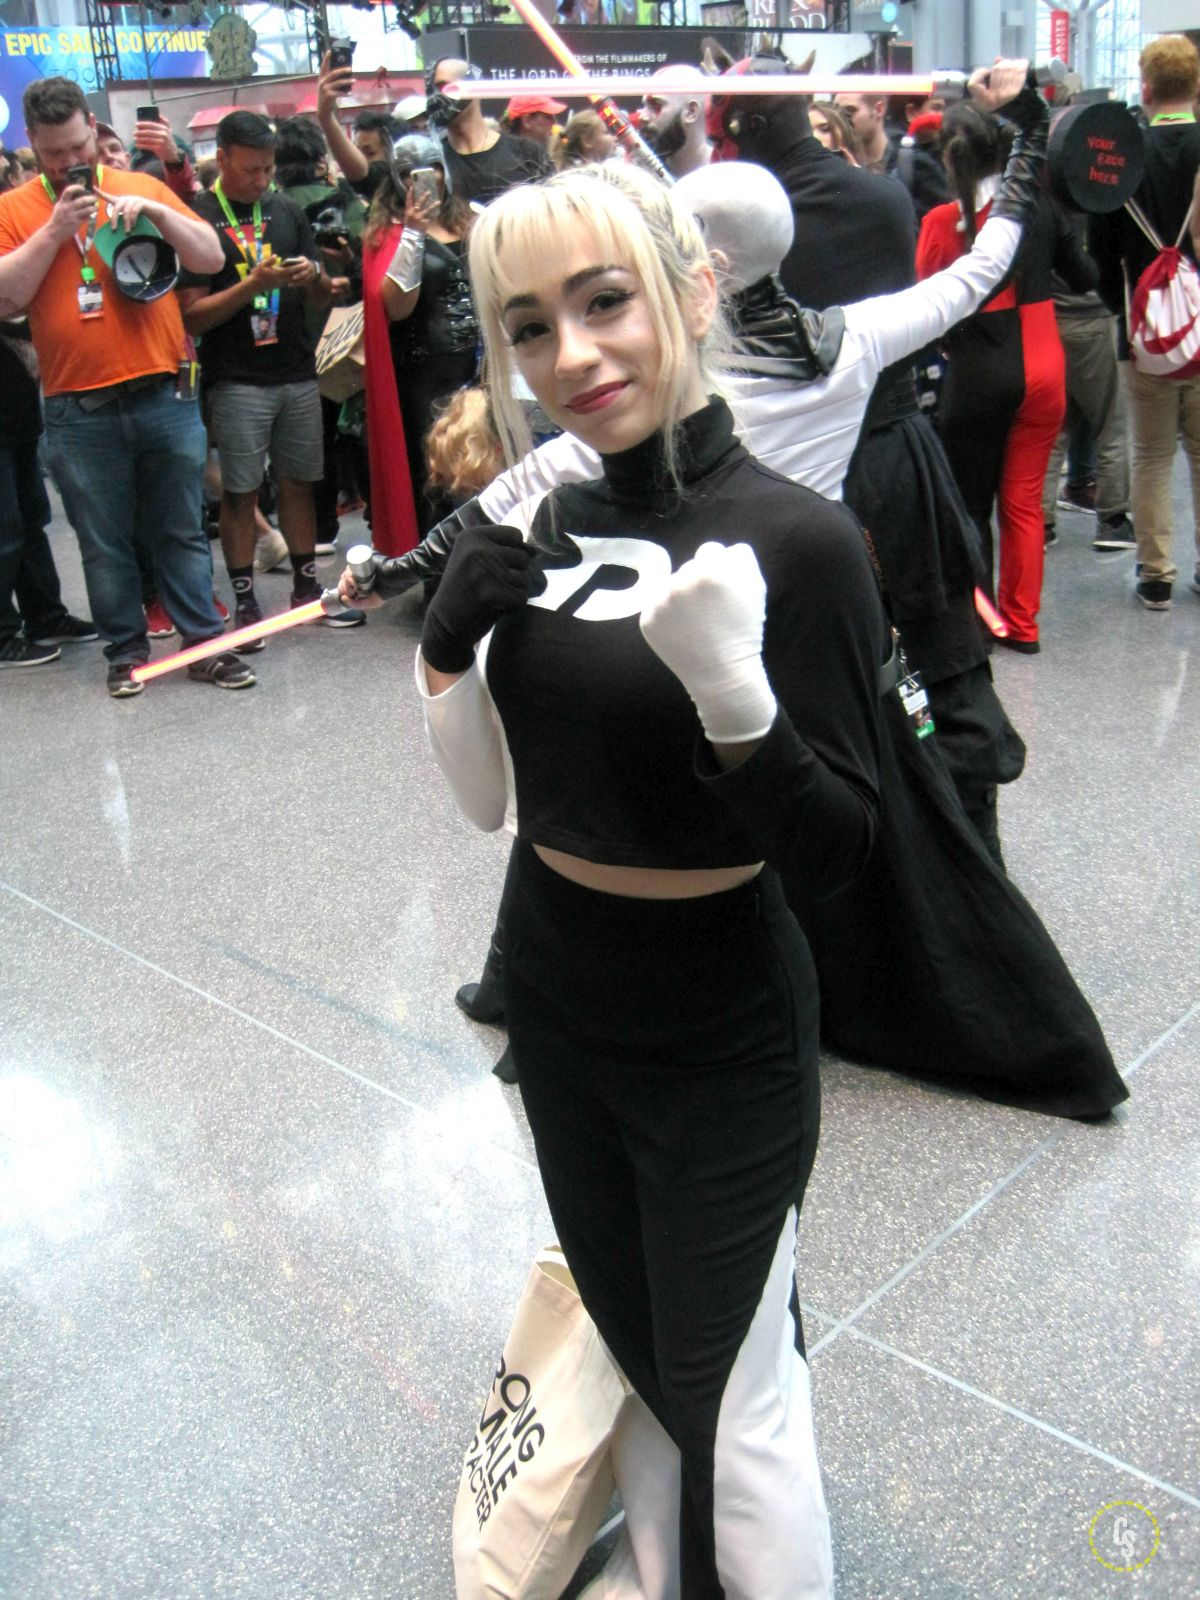 nycc183_052